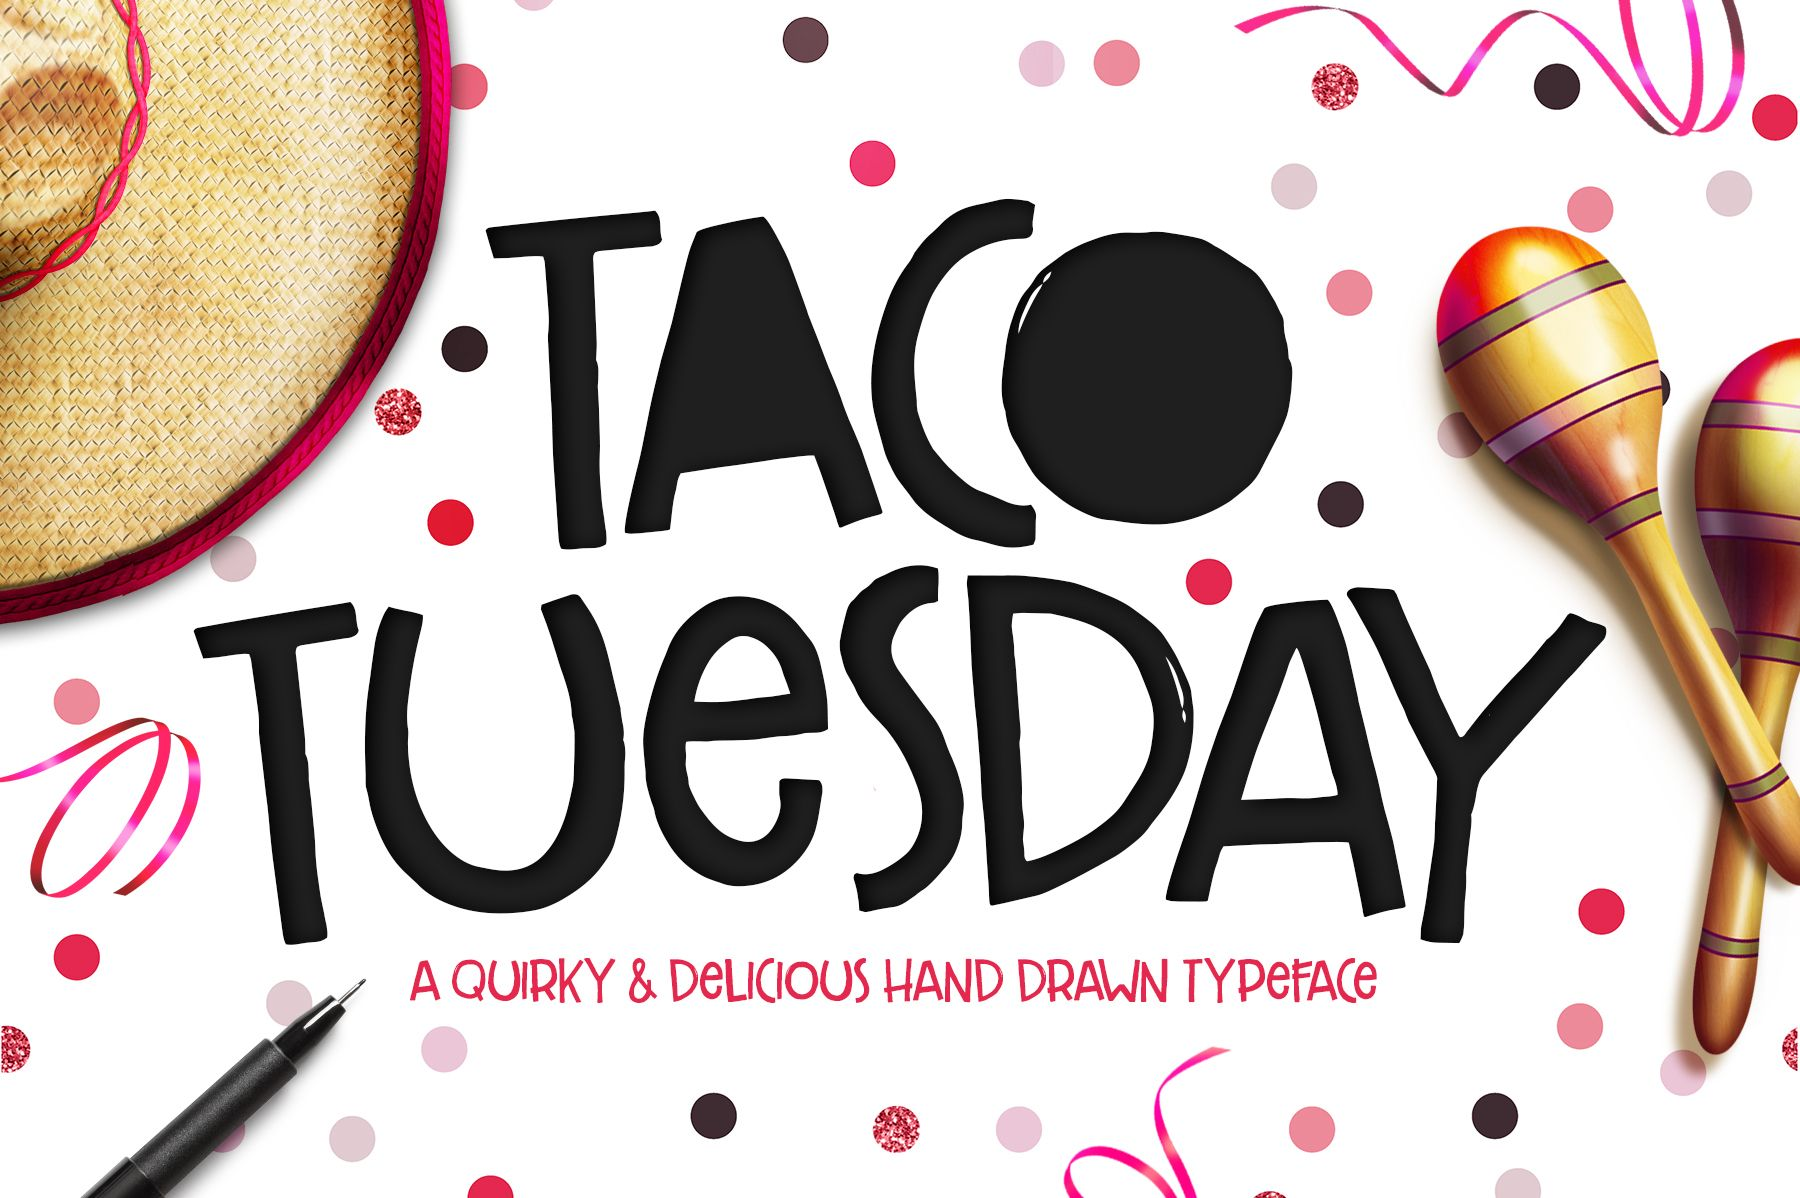 Font Alert Taco Tuesday Typeface By Callie Hegstrom On @Creativemarket